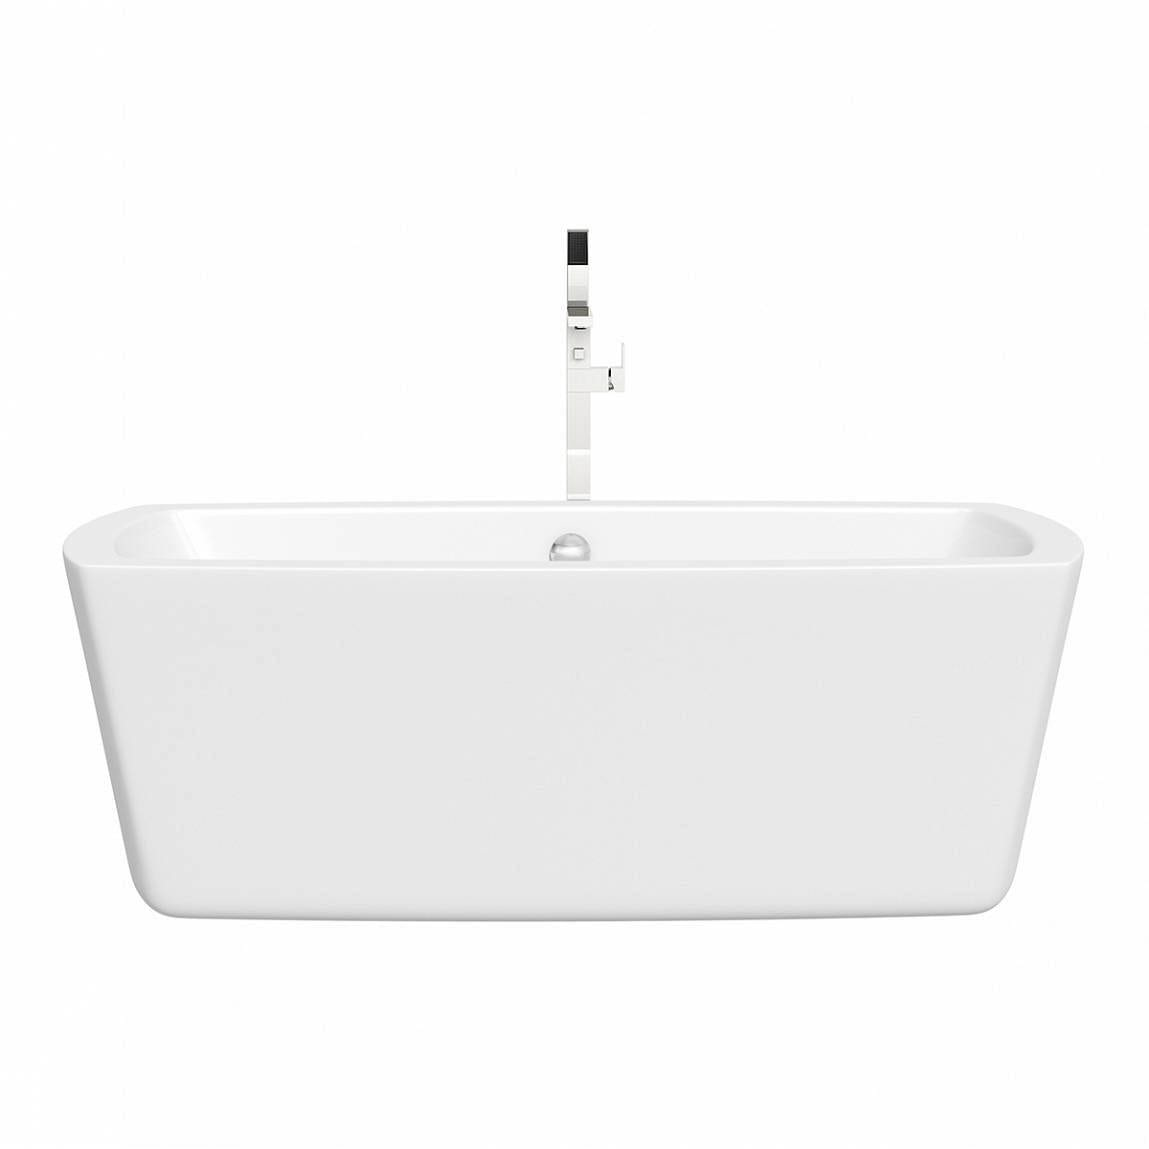 Nelson Freestanding Bath And Tap Deal